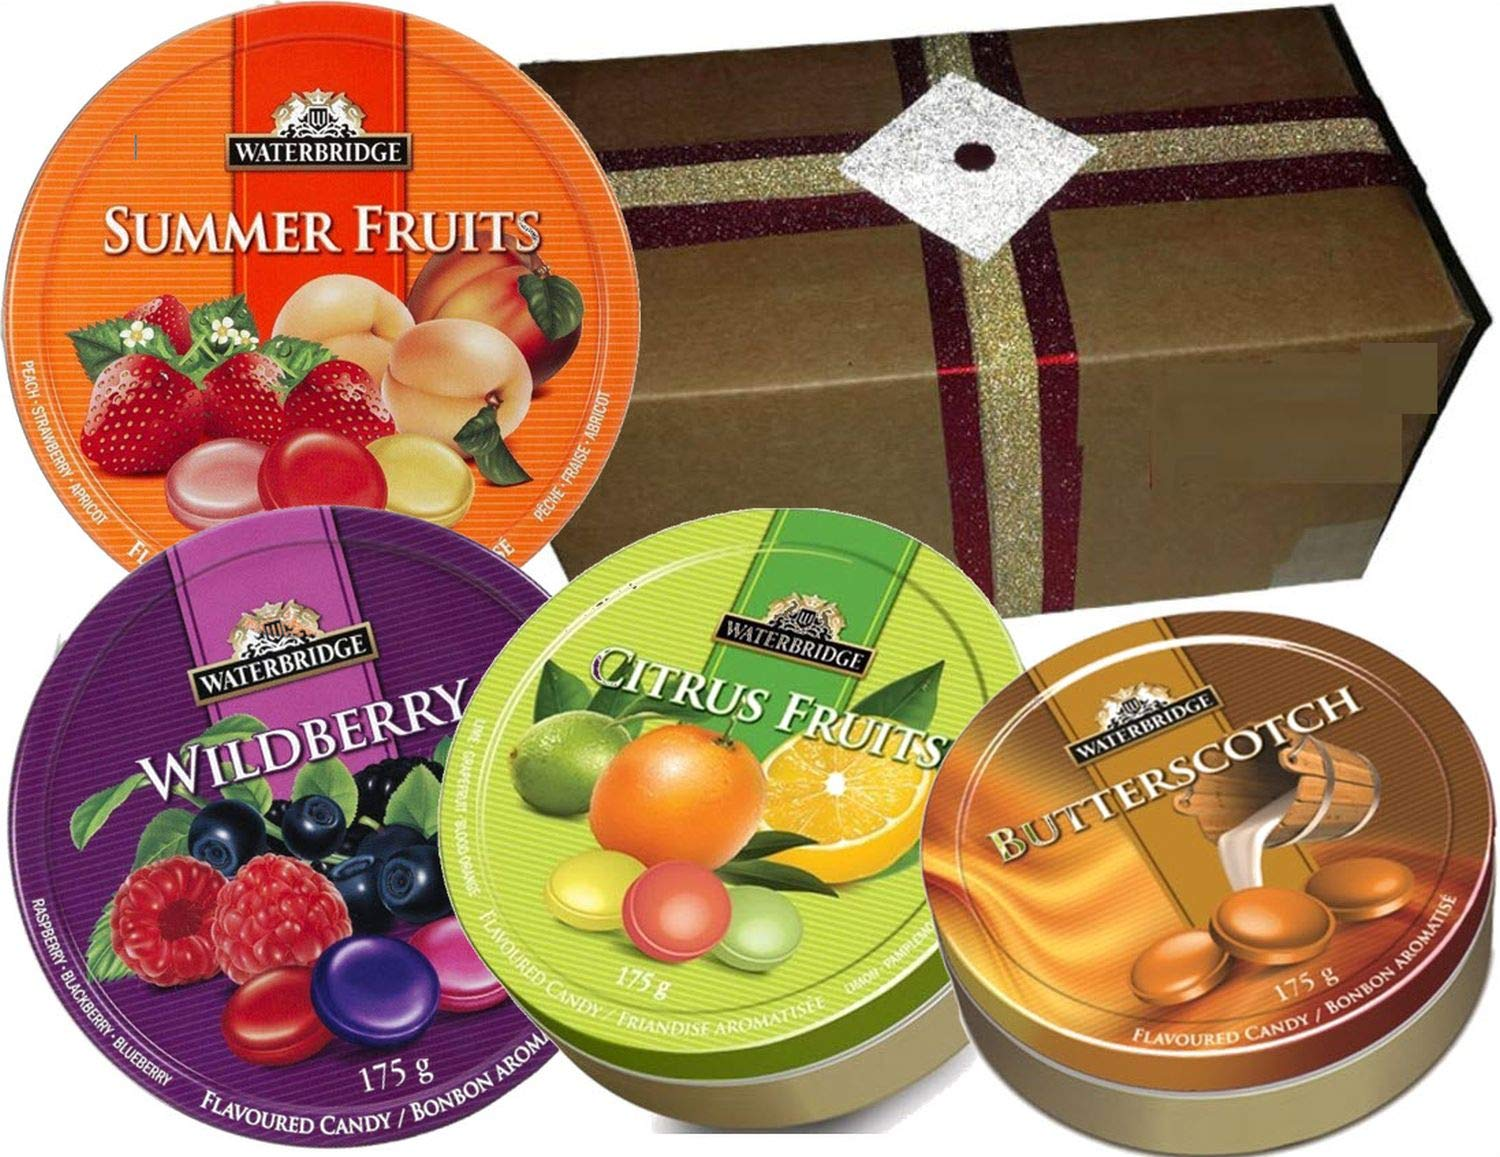 CDM product Festive Waterbridge European Candy Gold Tins Assortment packed in a specially designed Gift Box (Butterscotch - Citrus - Summer Fruits - Wildberry, 4 Round Tins) big image